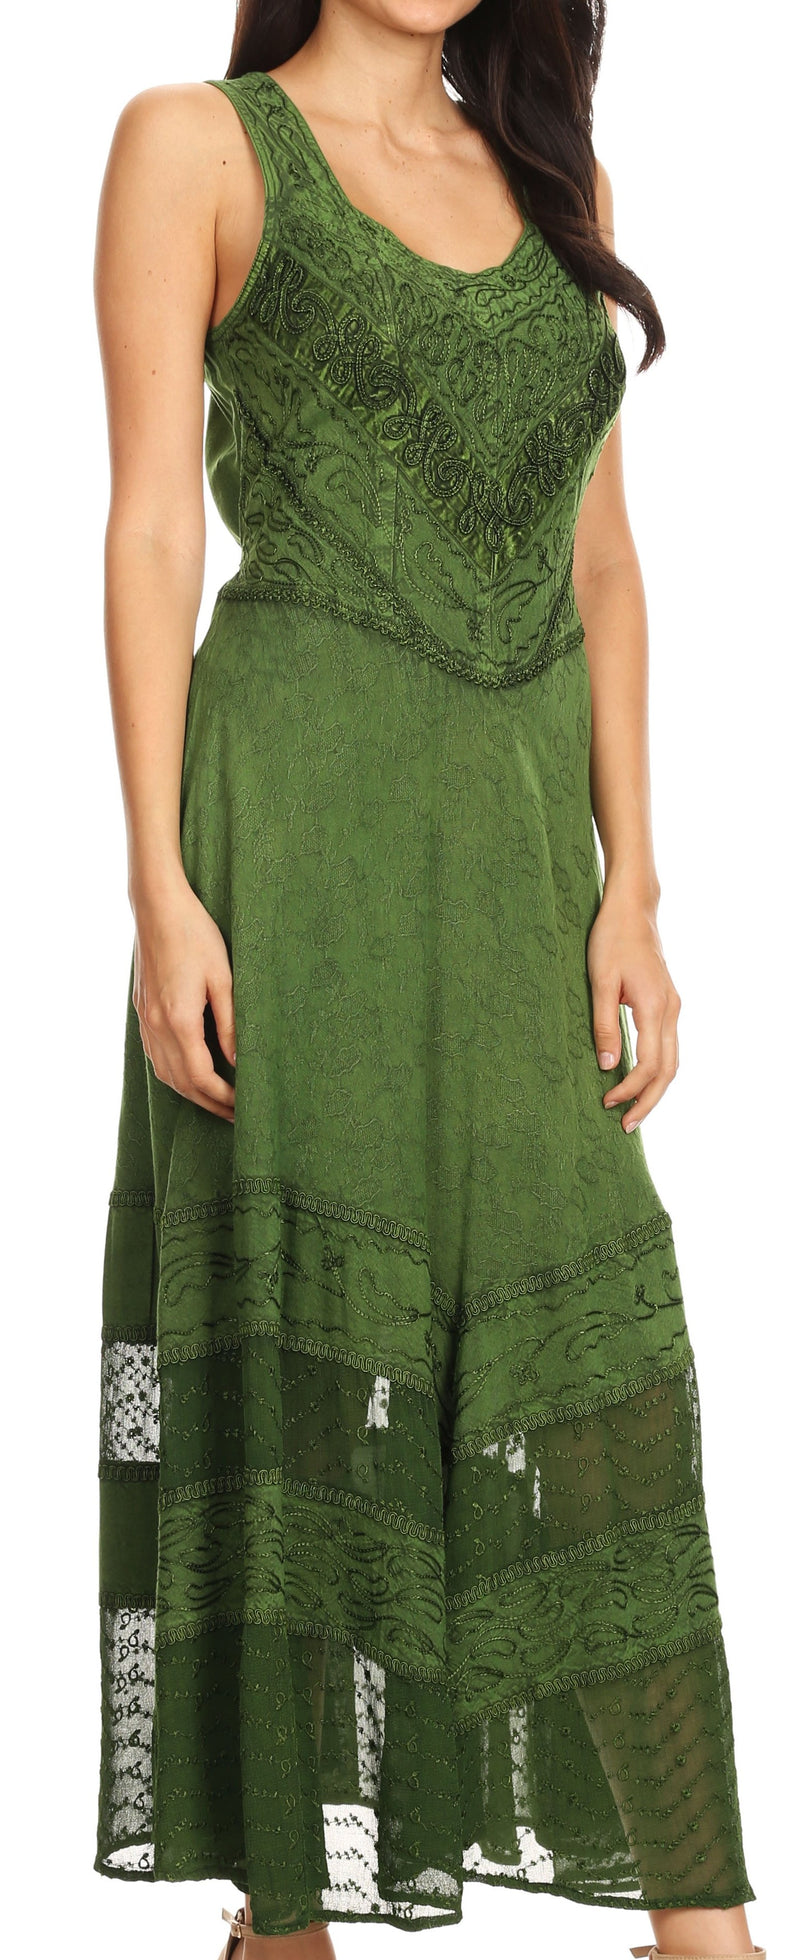 Sakkas Zendaya Stonewashed Rayon Embroidered Floral Vine Sleeveless V-neck Dress